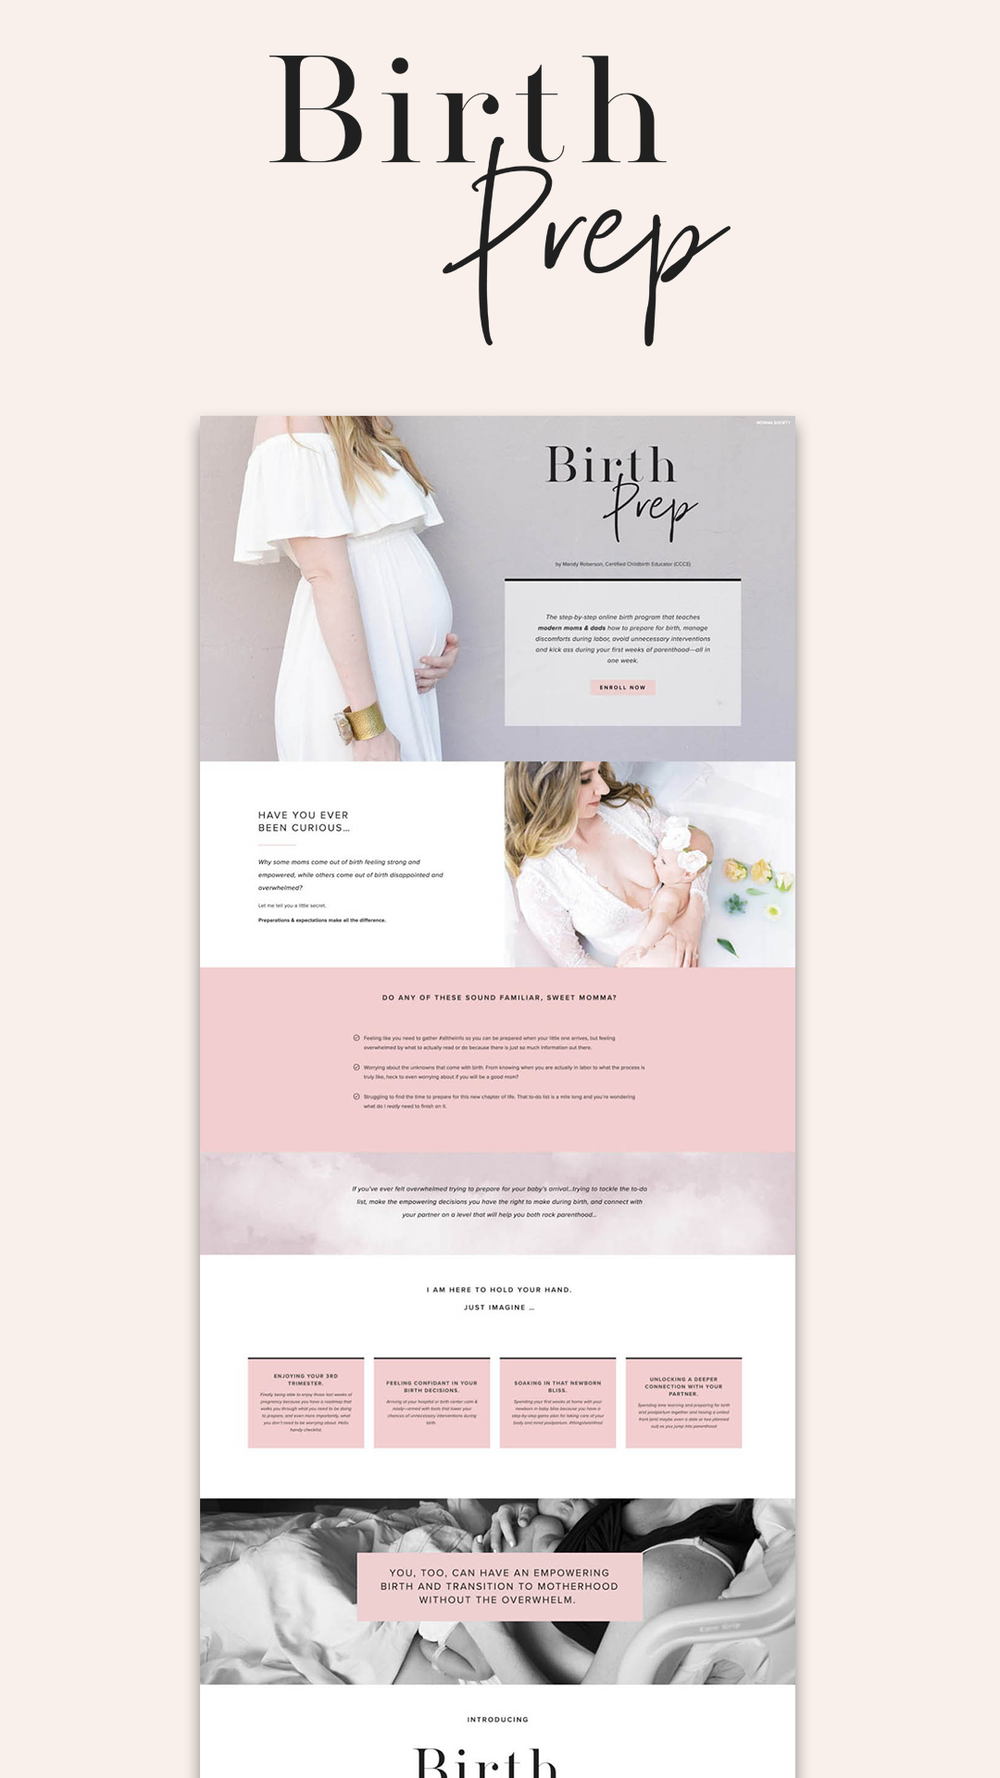 Birth Prep sales page | Squarespace design by Jodi Neufeld Design